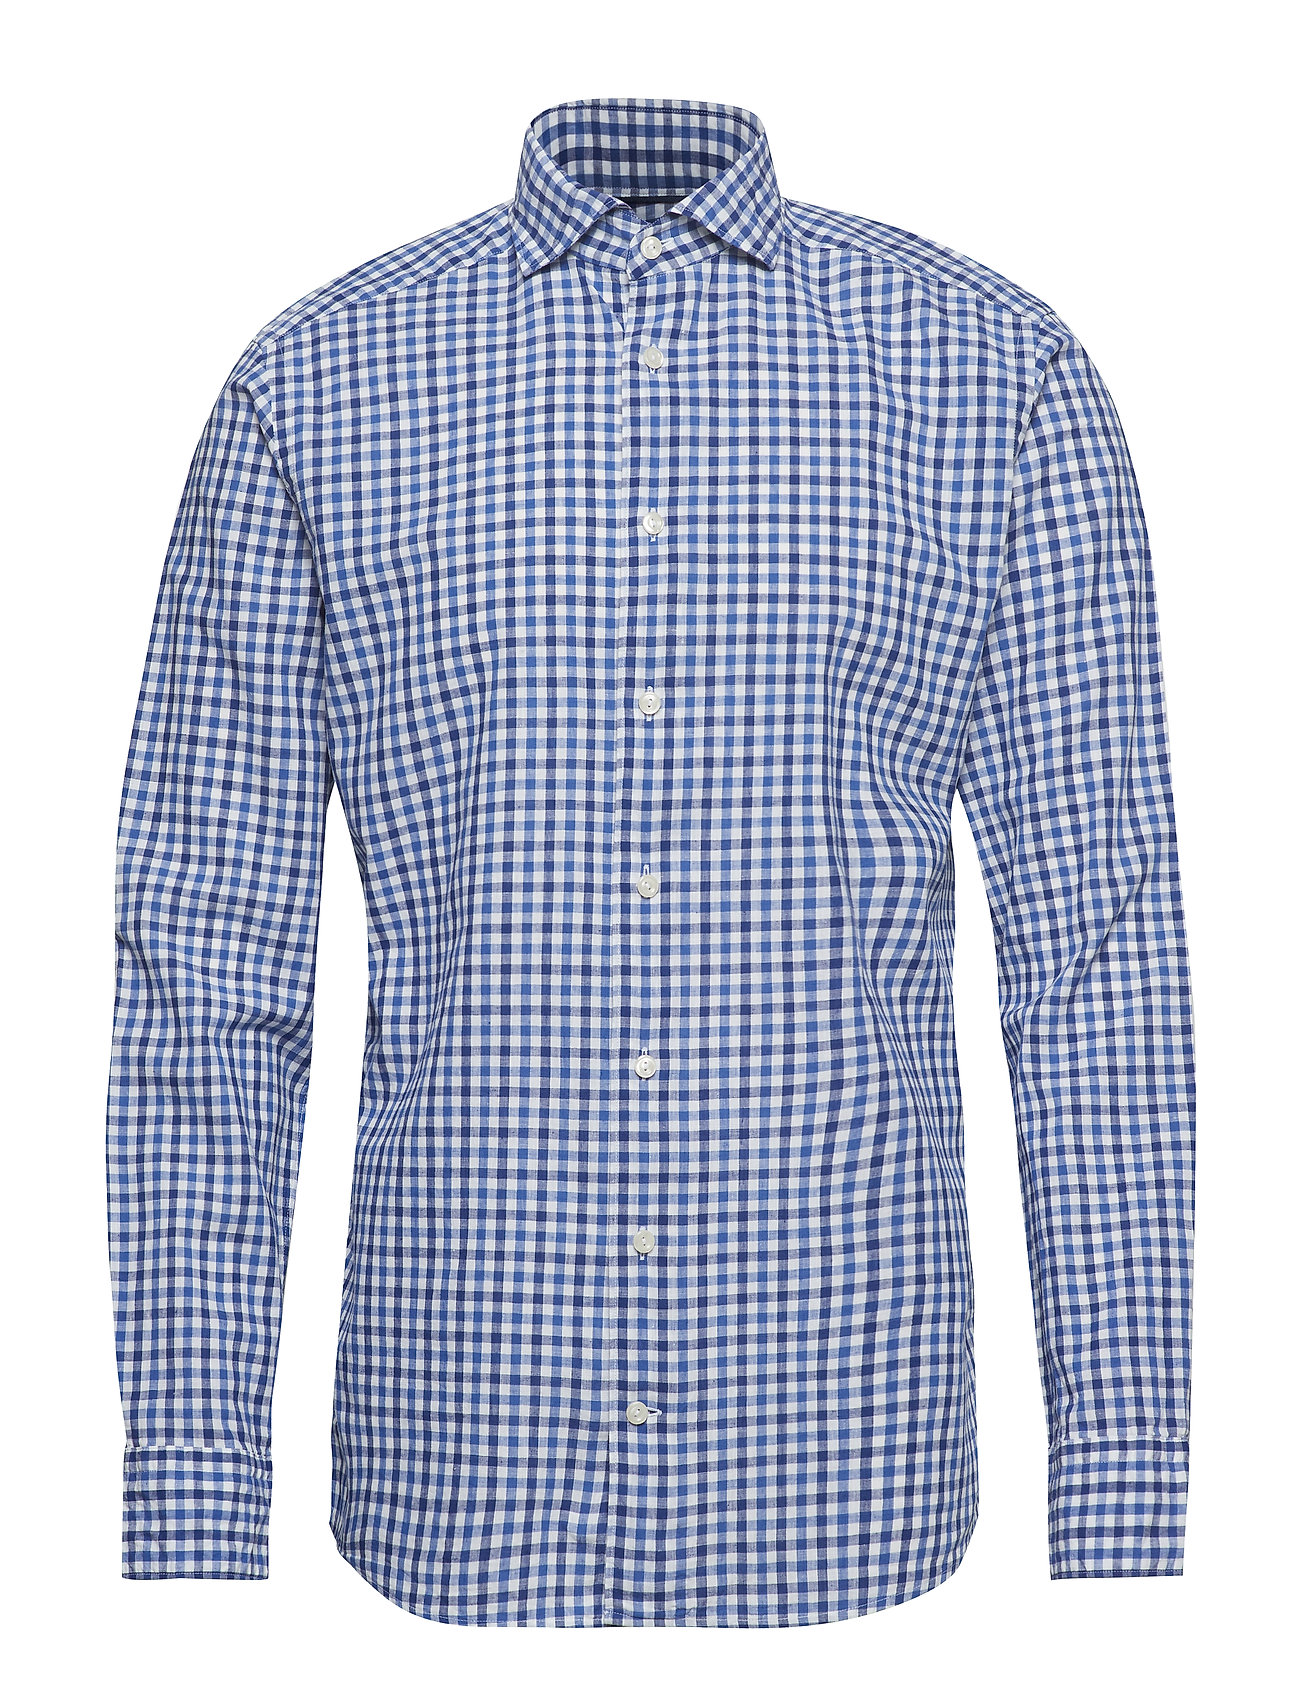 Eton Blue Cotton & Linen Gingham Check Shirt - BLUE